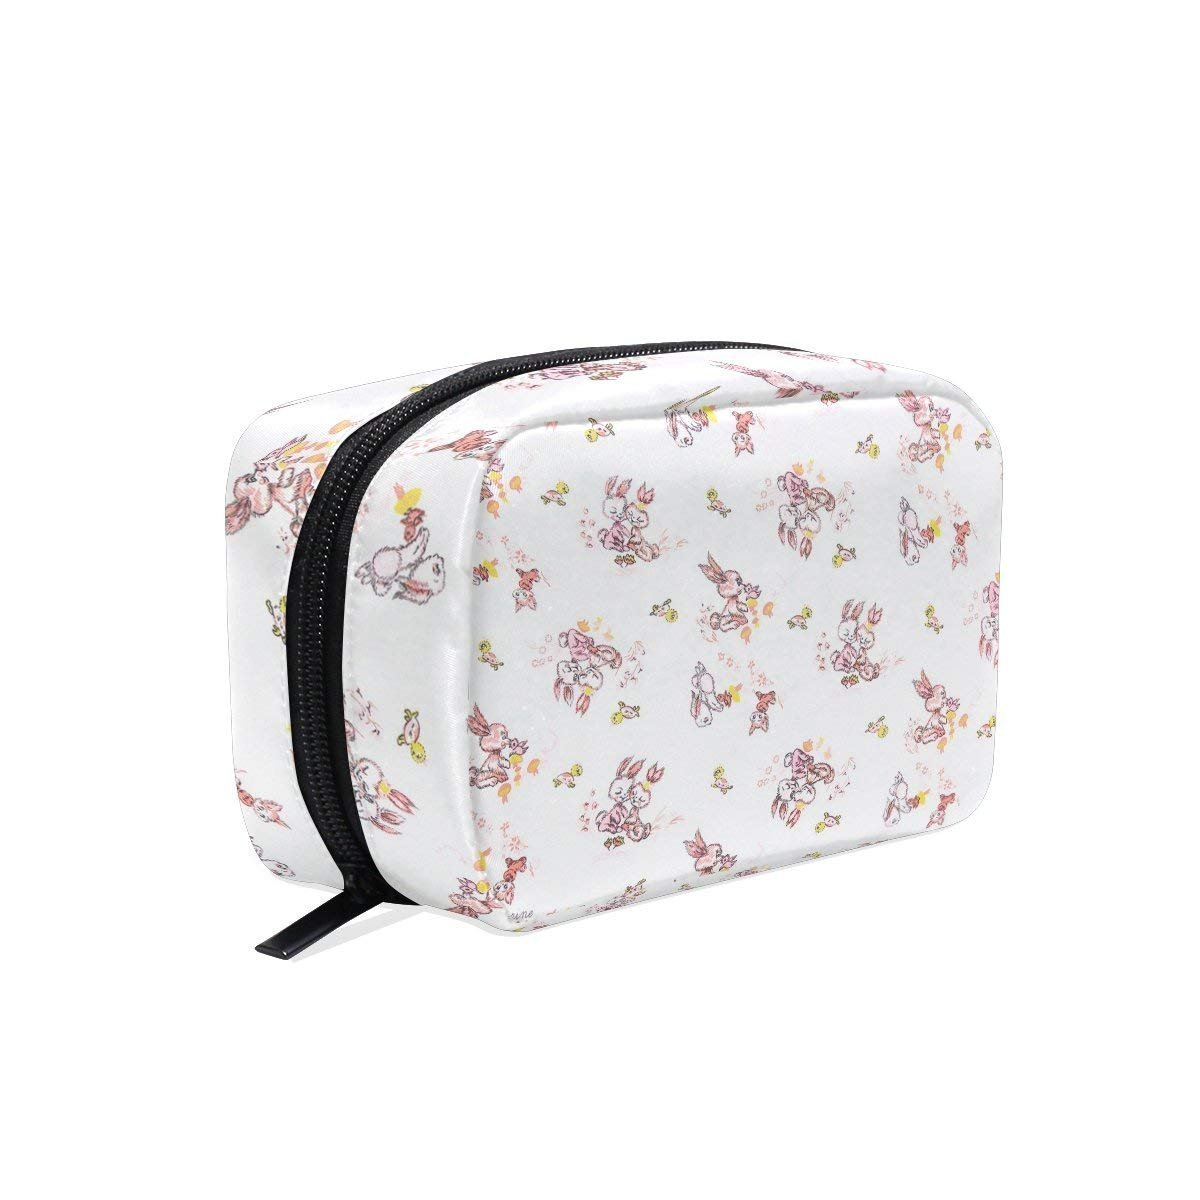 Bunny Love Makeup Bag Multi Compartment Pouch Storage Cosmetic Bags for Women Travel